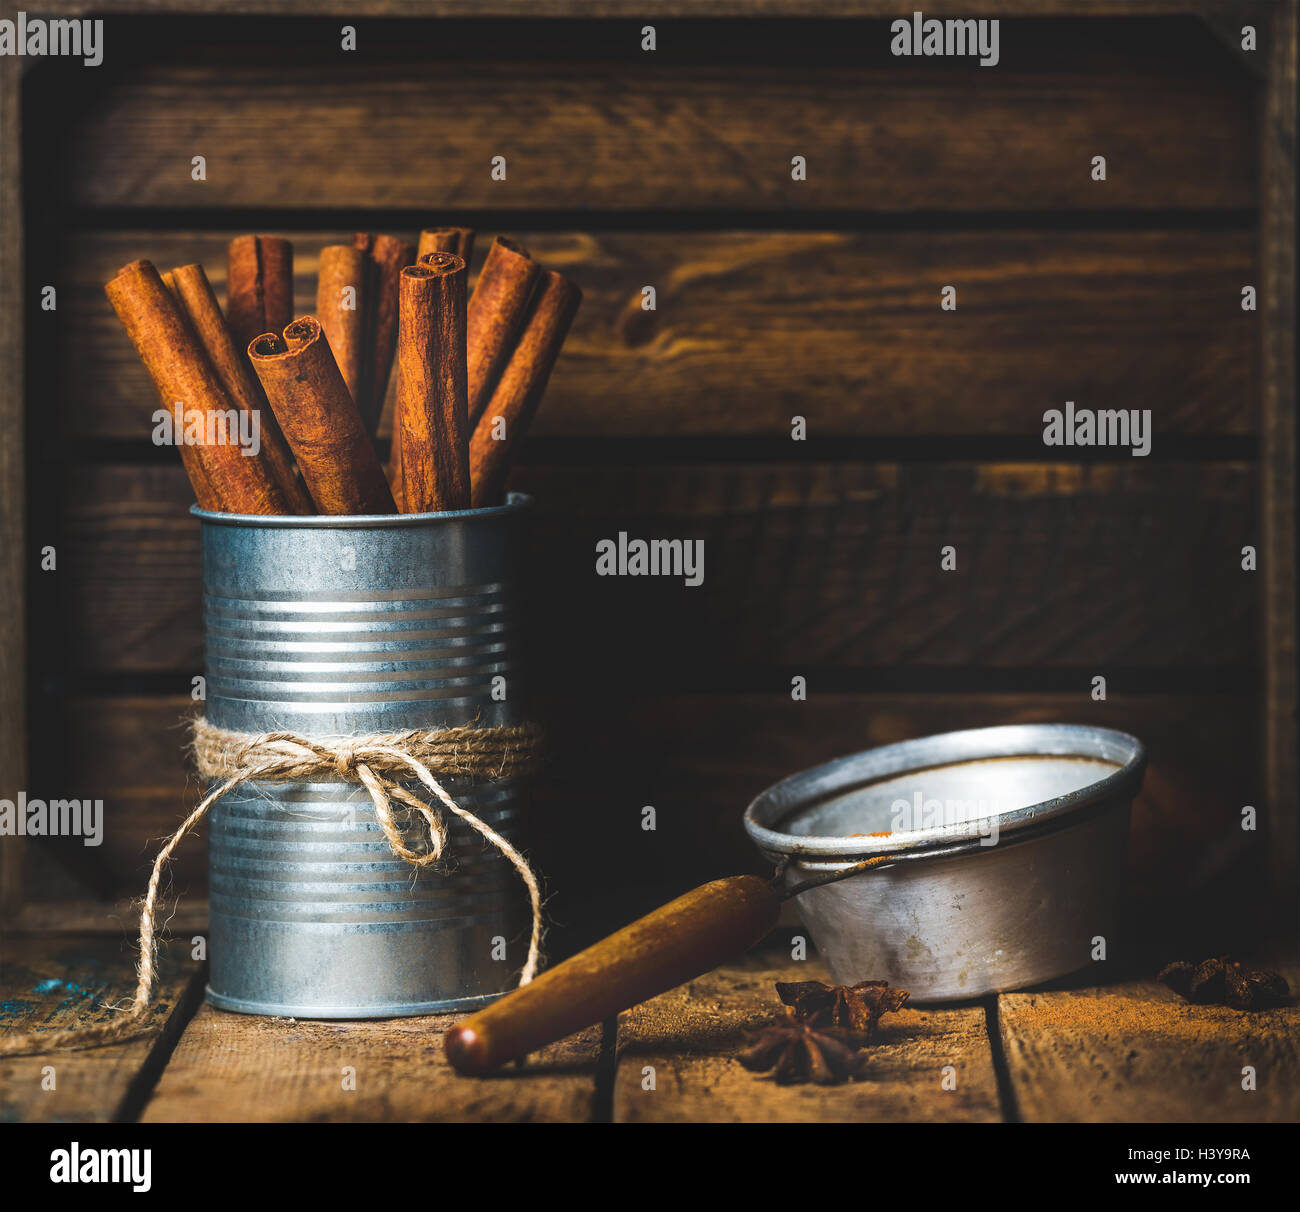 Cinnamon sticks in can tied with rope, anise and sieve - Stock Image